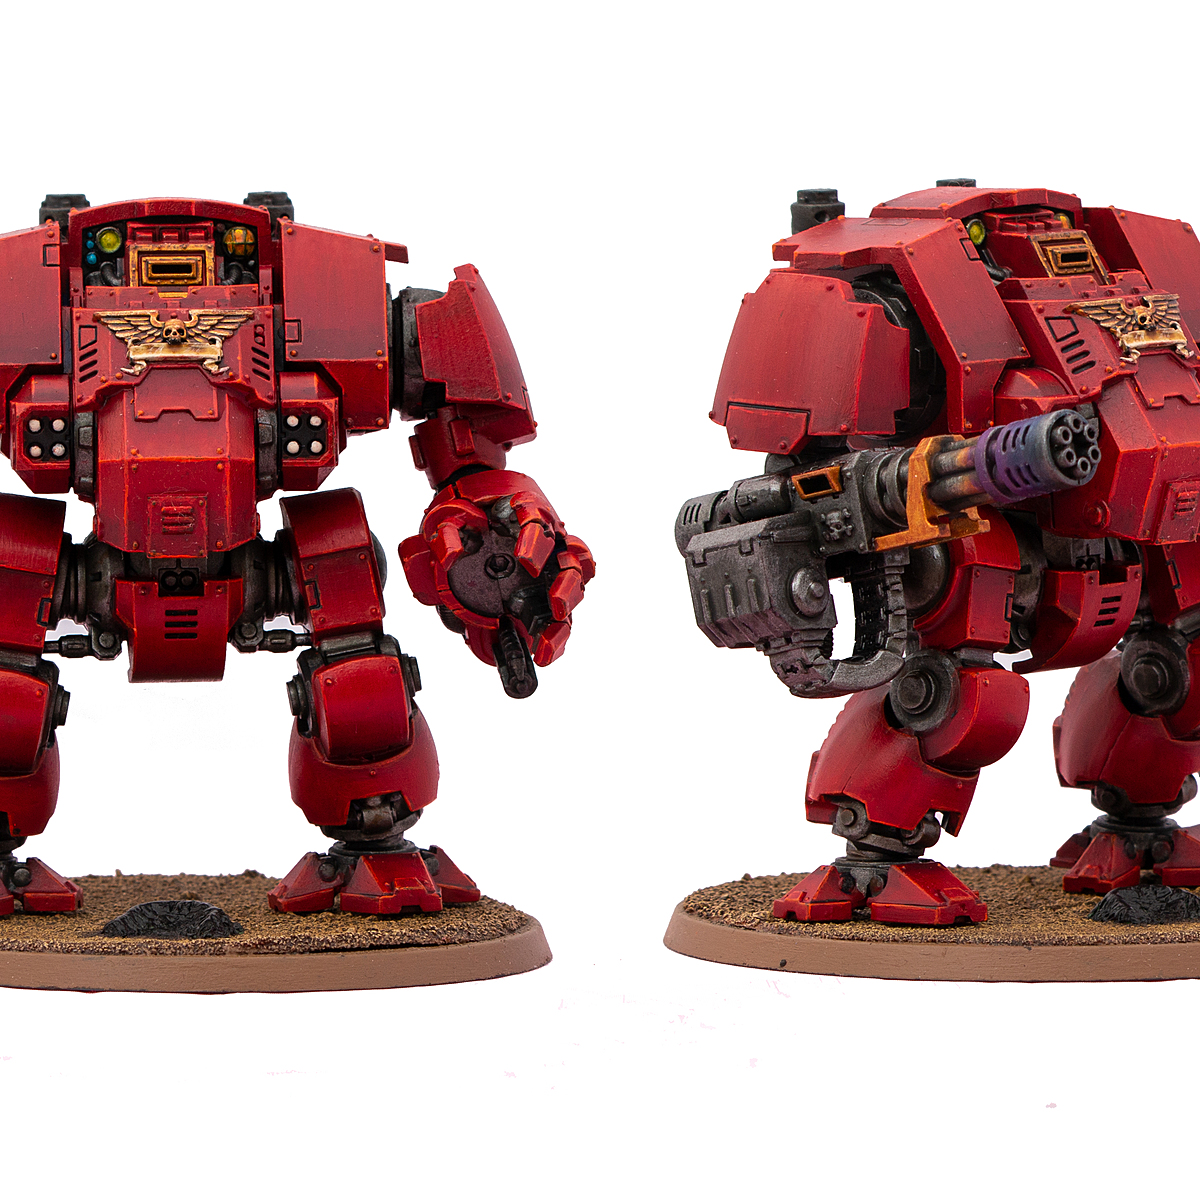 Blood Angels armour